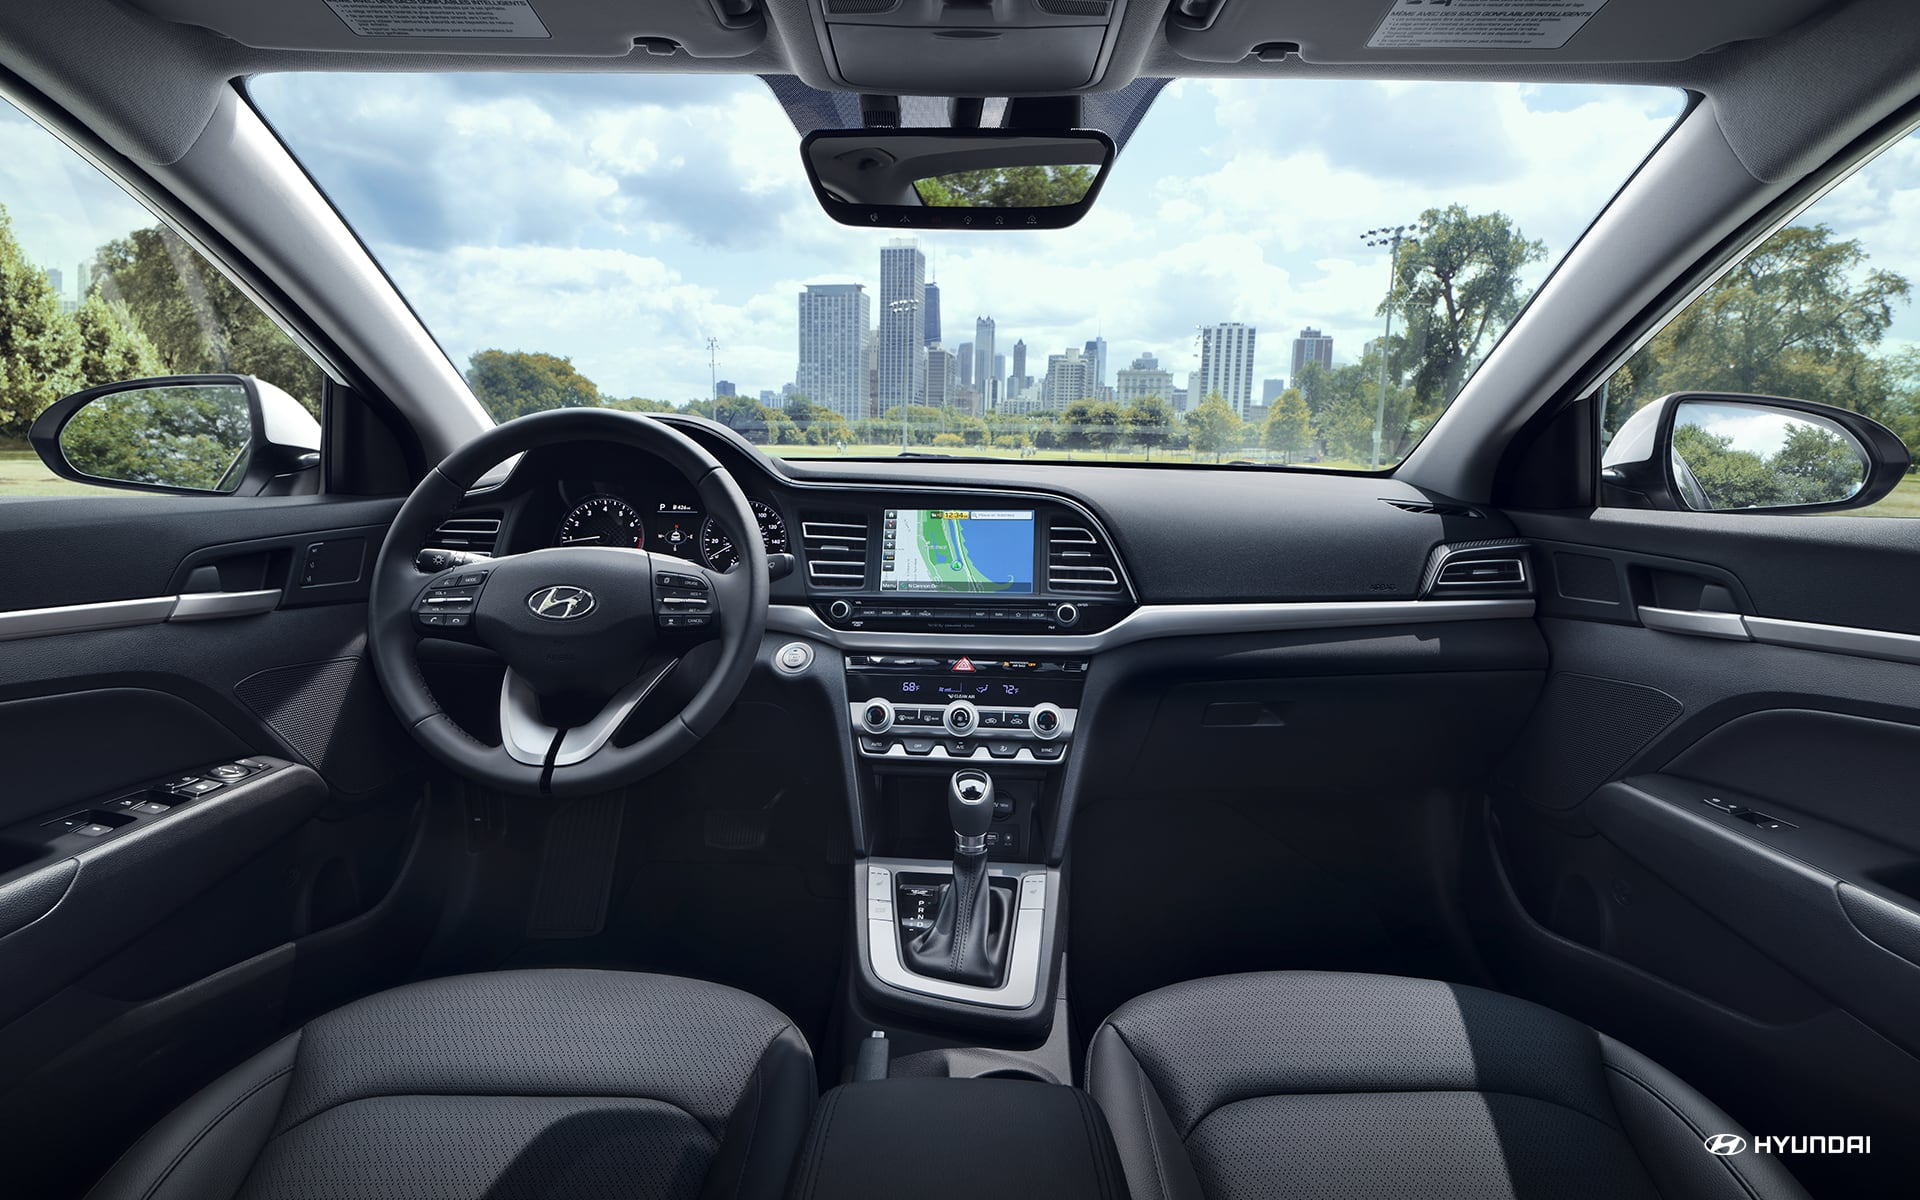 2019 Hyundai Elantra vs Ford Fusion Interior near Bolingbrook, IL